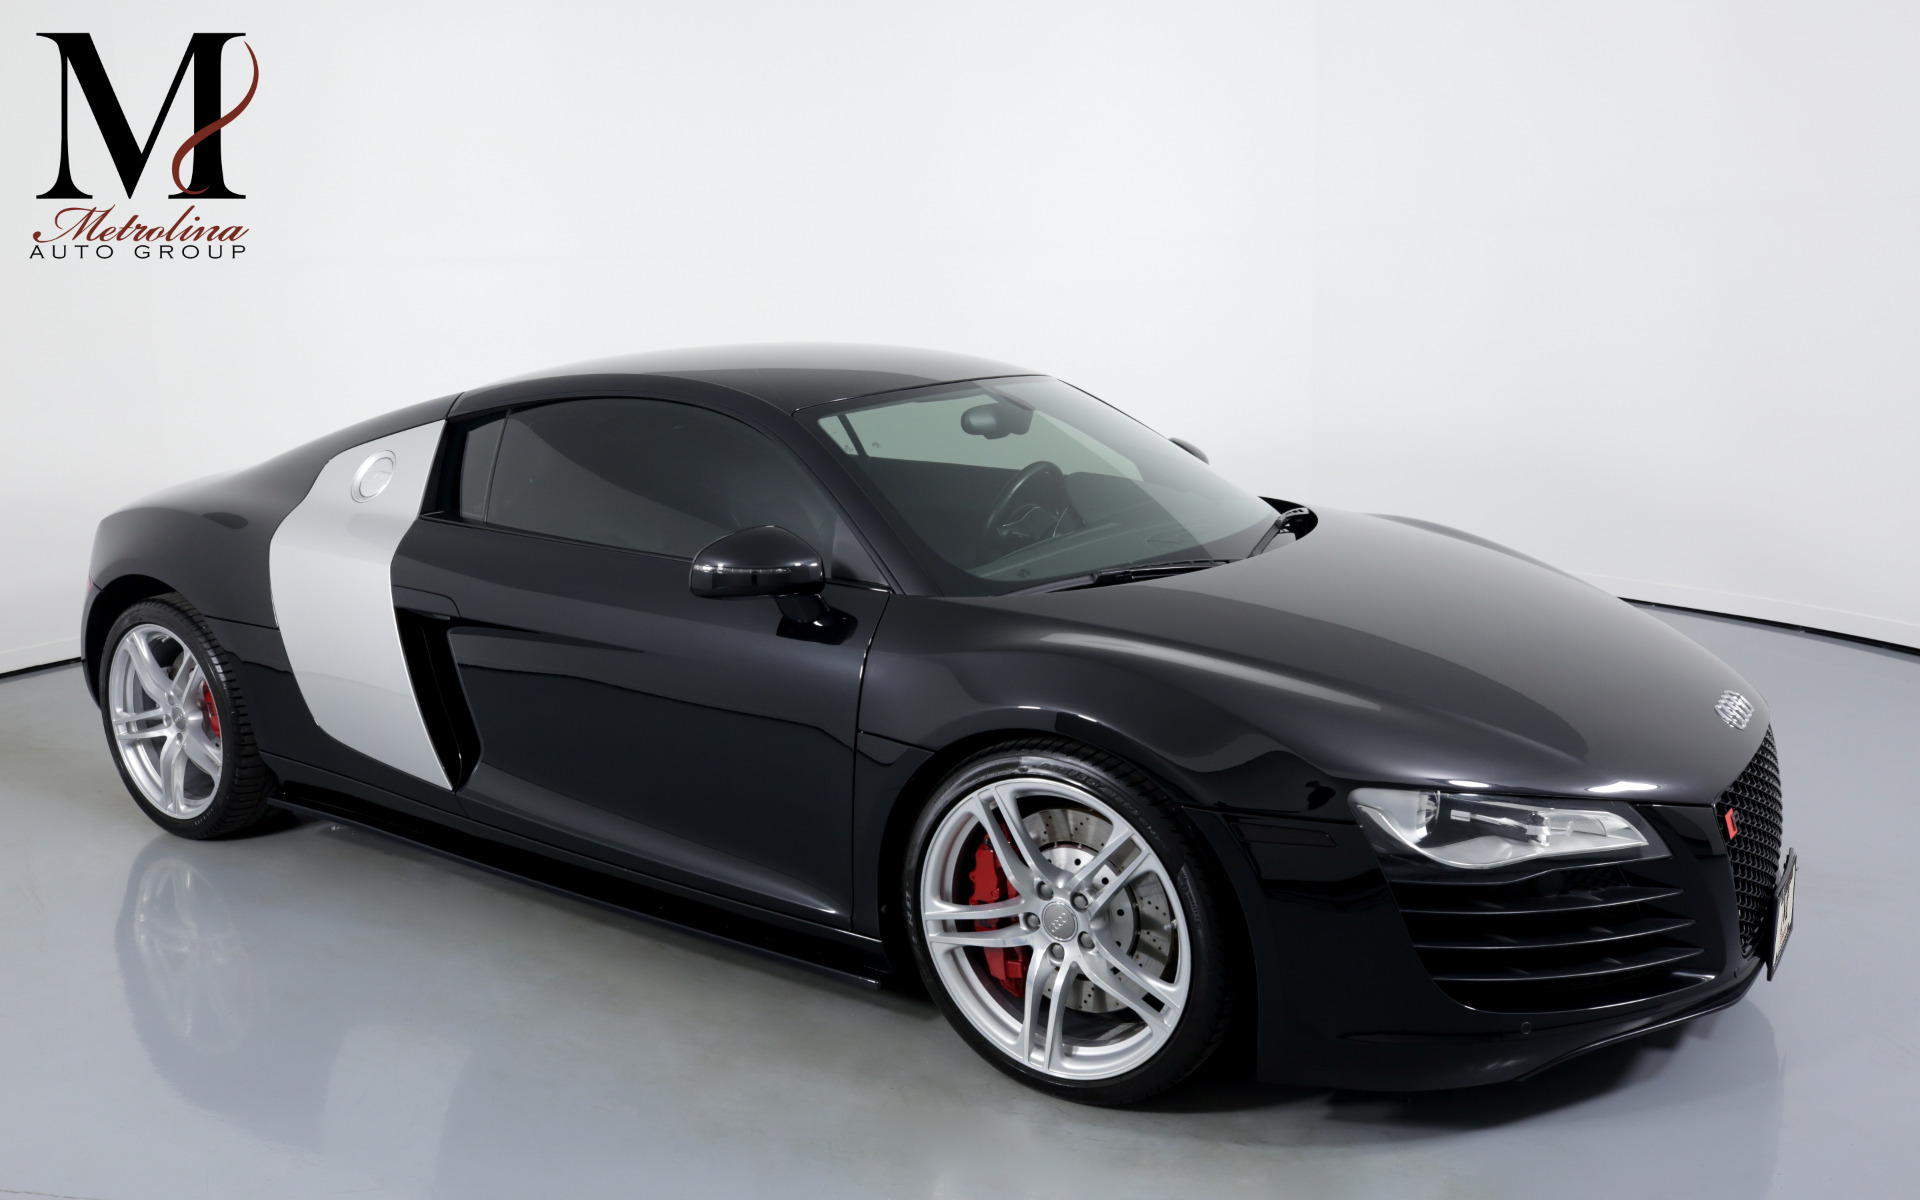 Used 2009 Audi R8 quattro for sale $62,996 at Metrolina Auto Group in Charlotte NC 28217 - 1